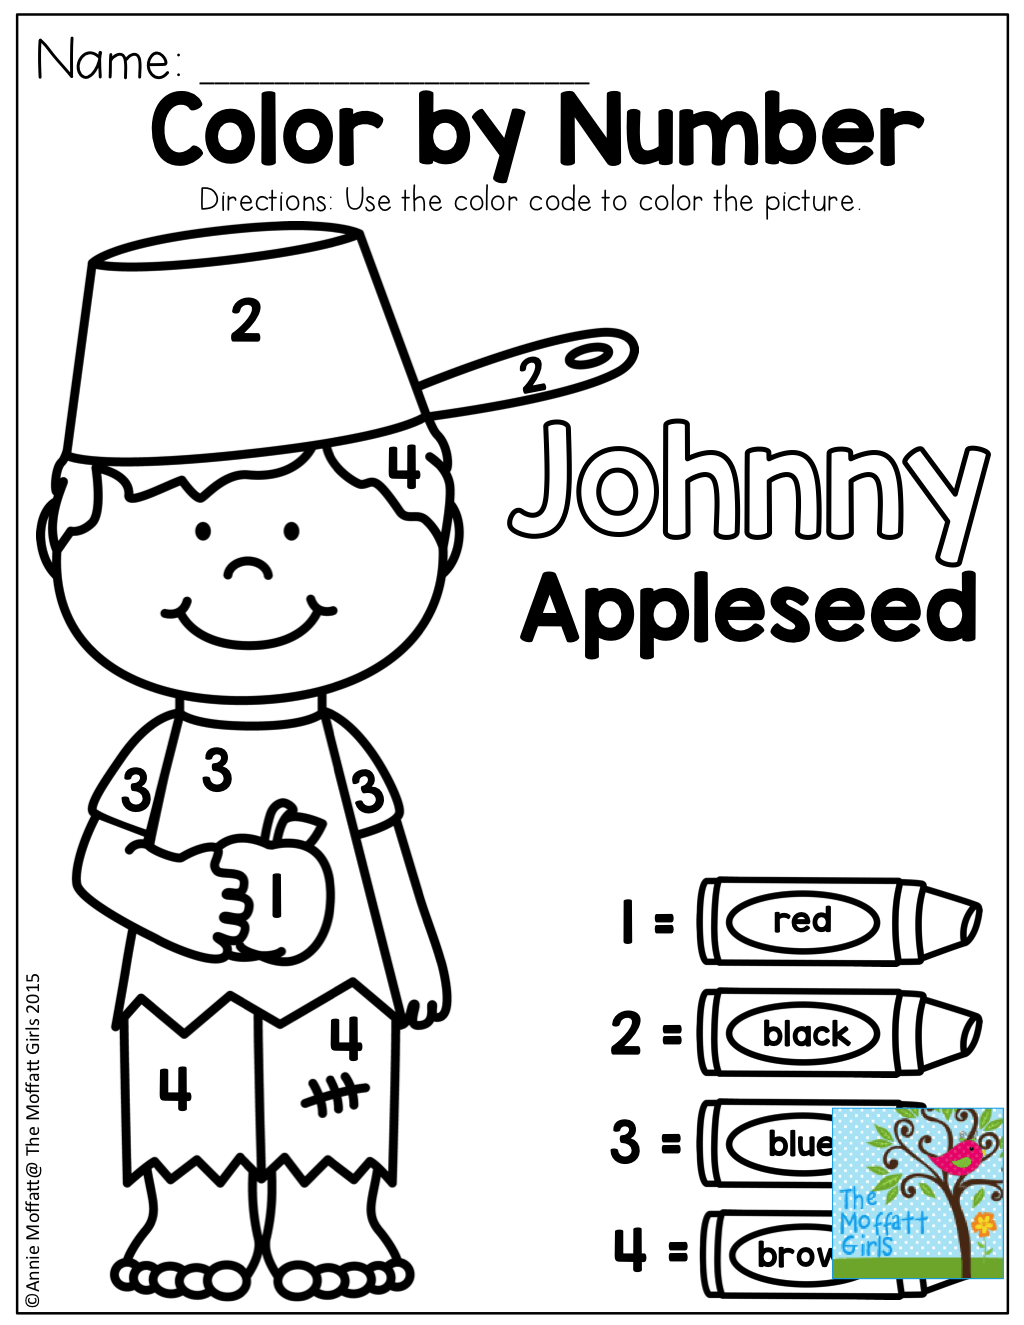 Color By Number With Johnny Appleseed Tons Of Fun Printables To Practice Basic Skills